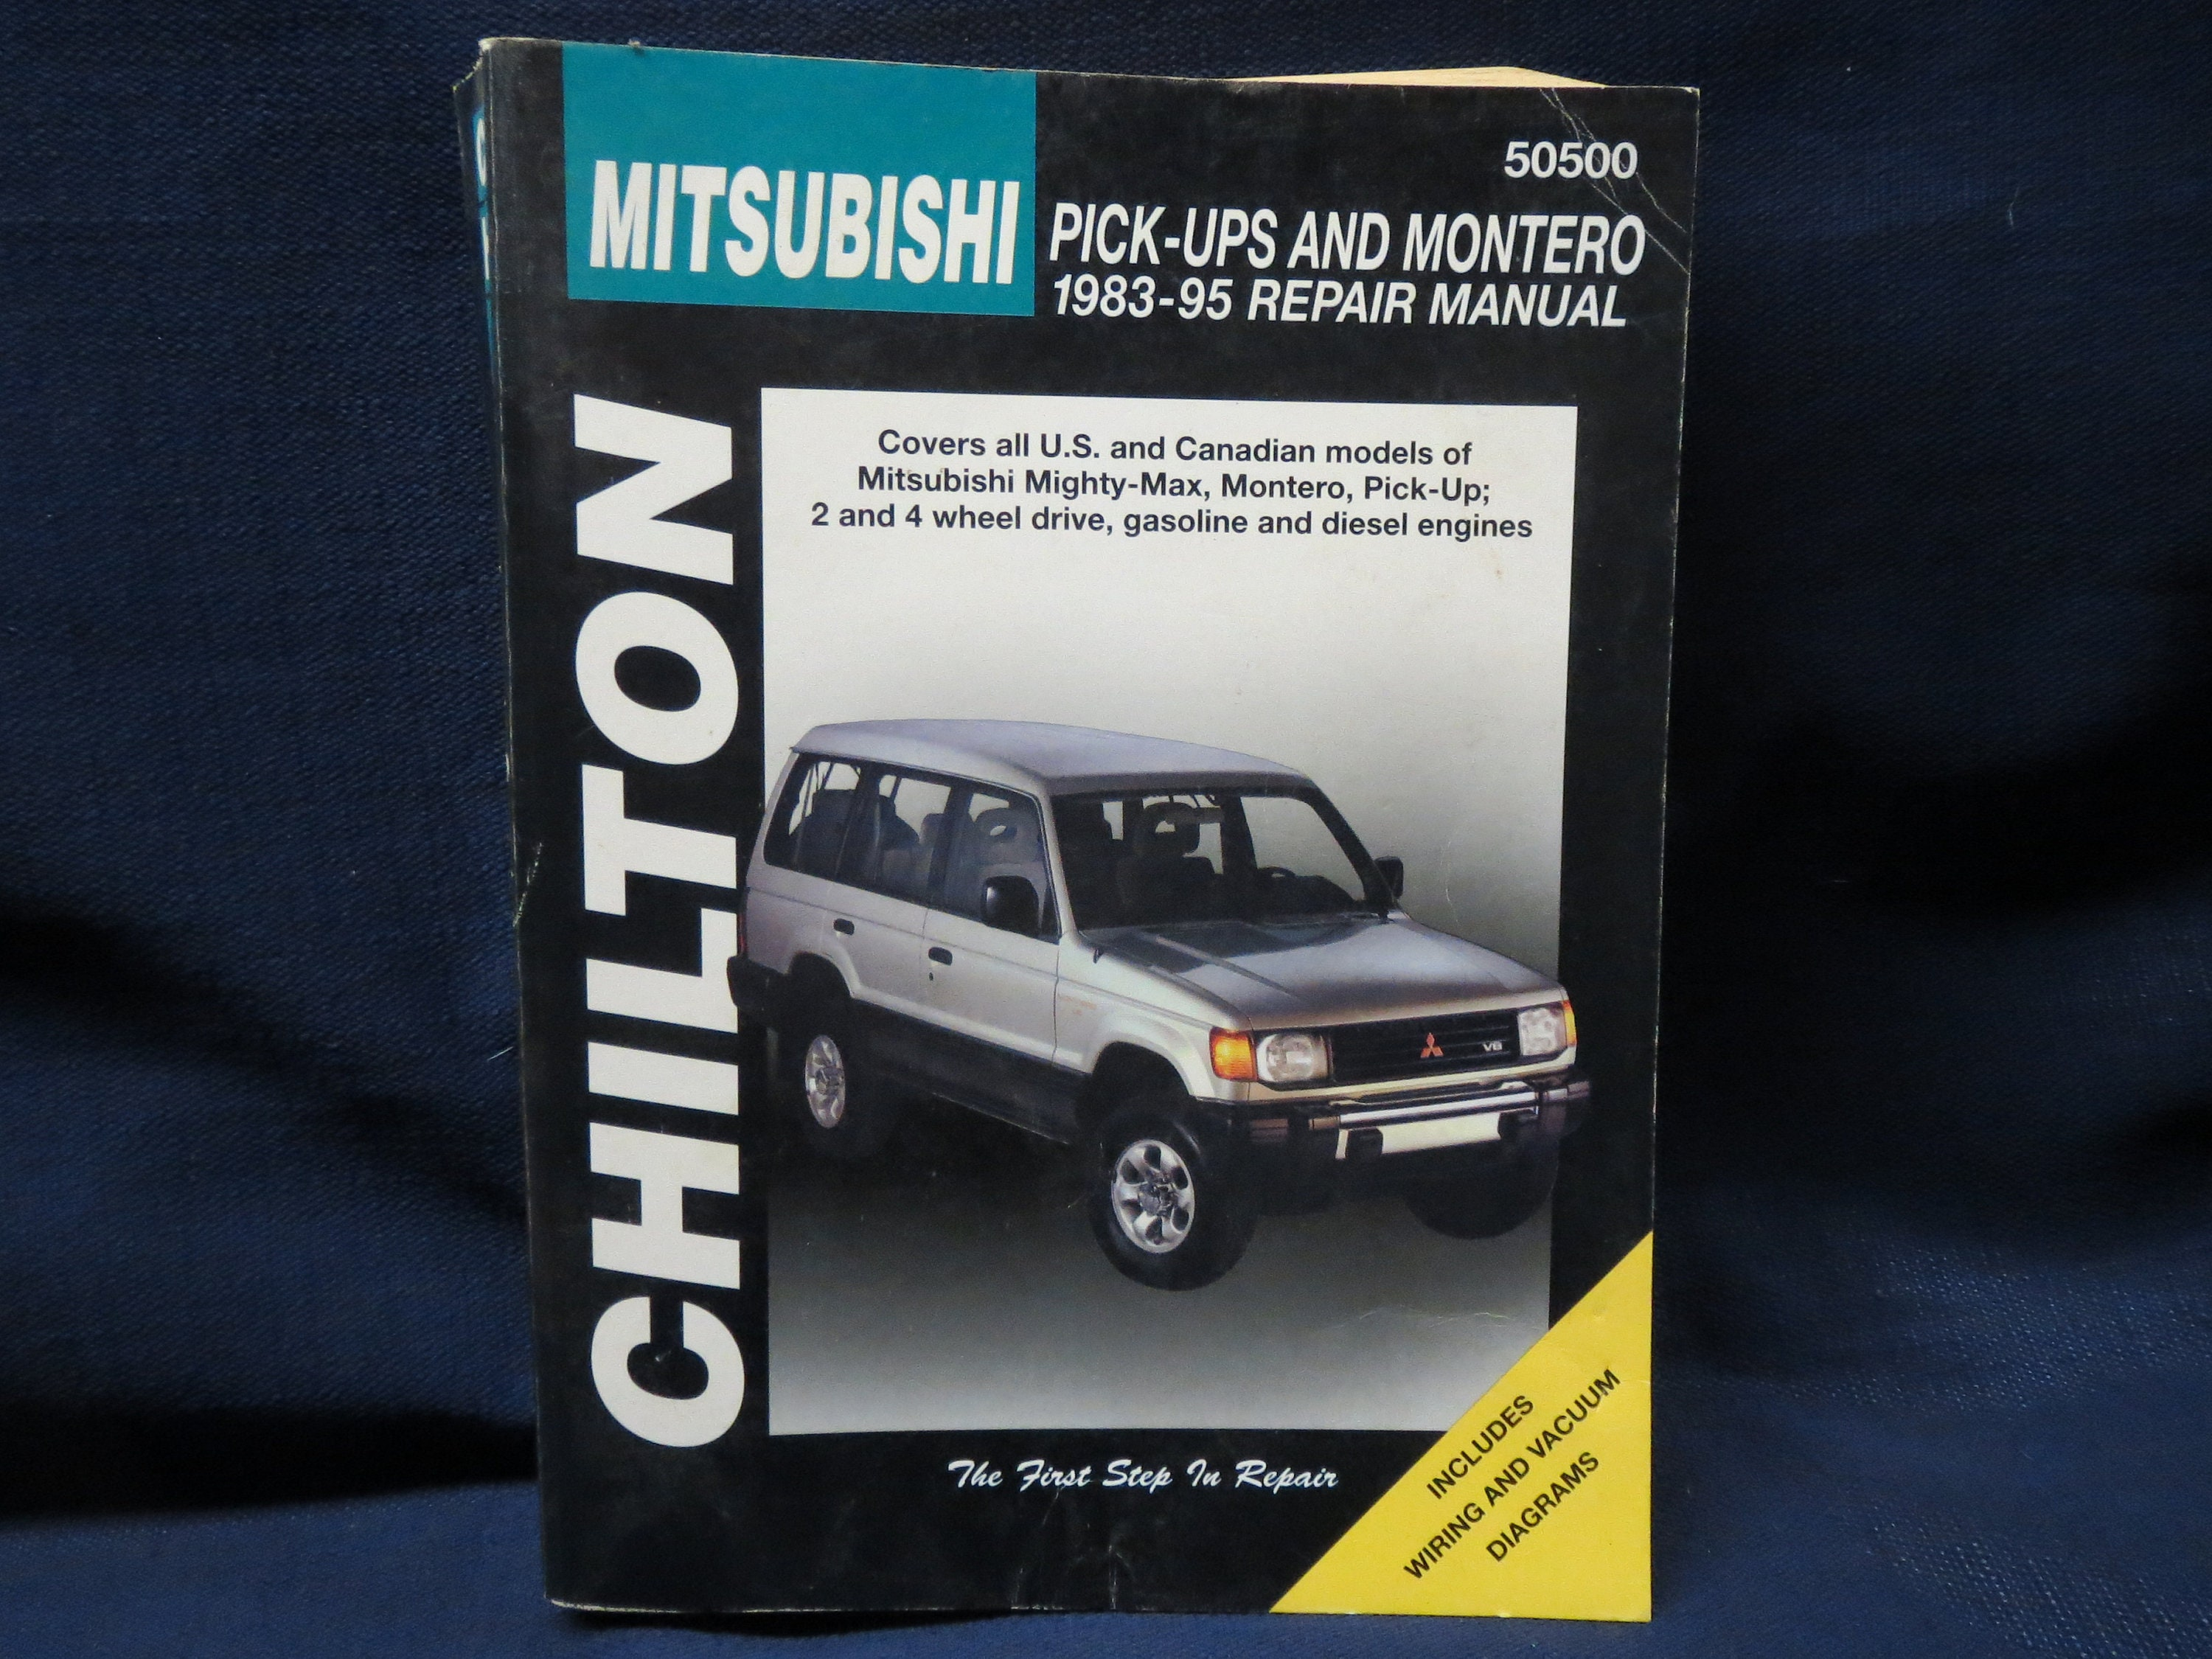 Mitsubishi Mighty Max Engine Diagram Wiring Library 4g13 1983 95 Chiltons Montero Pick Up 2 4 Etsy Zoom